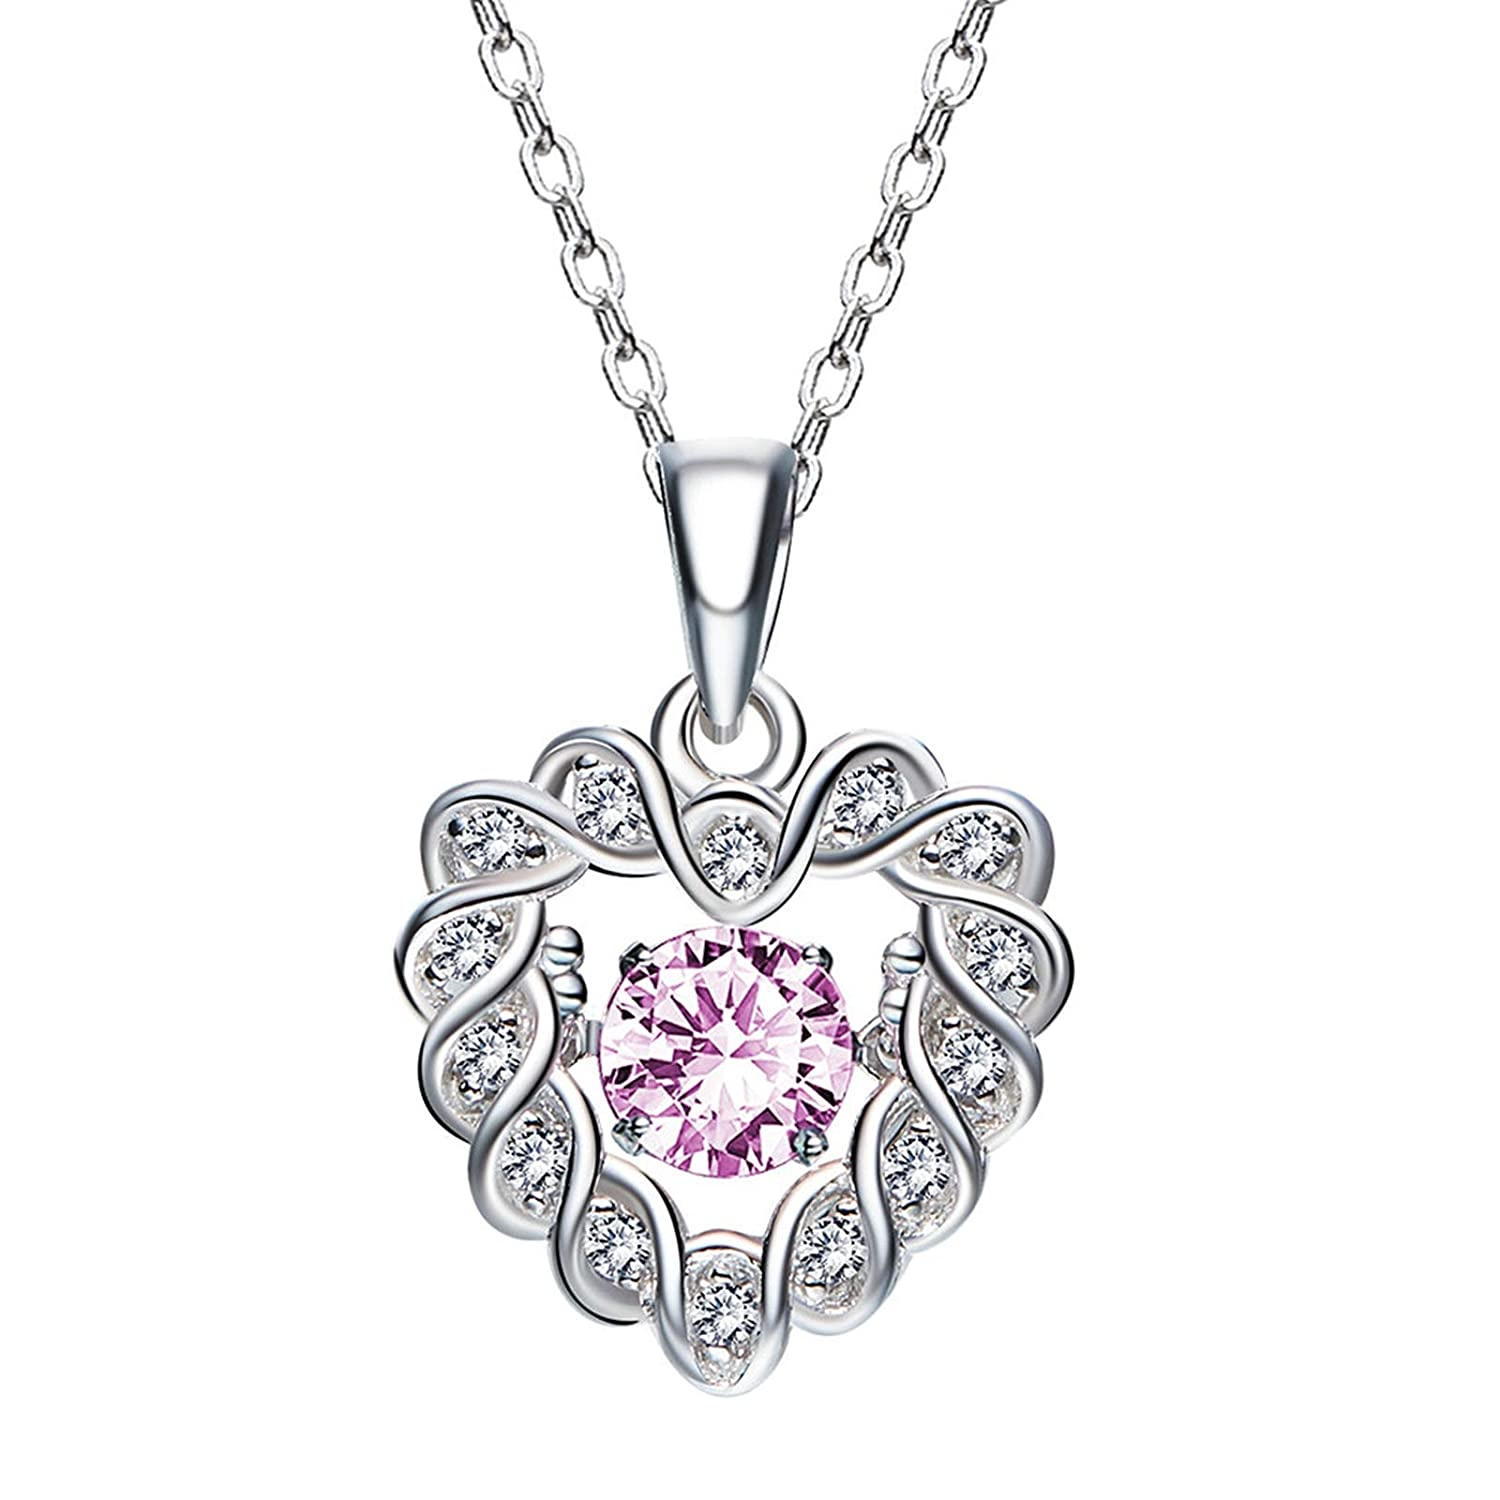 ANAZOZ Forever Love S925 Sterling Silver Cubic Zirconia Twist Heart Pendant Necklace for Her